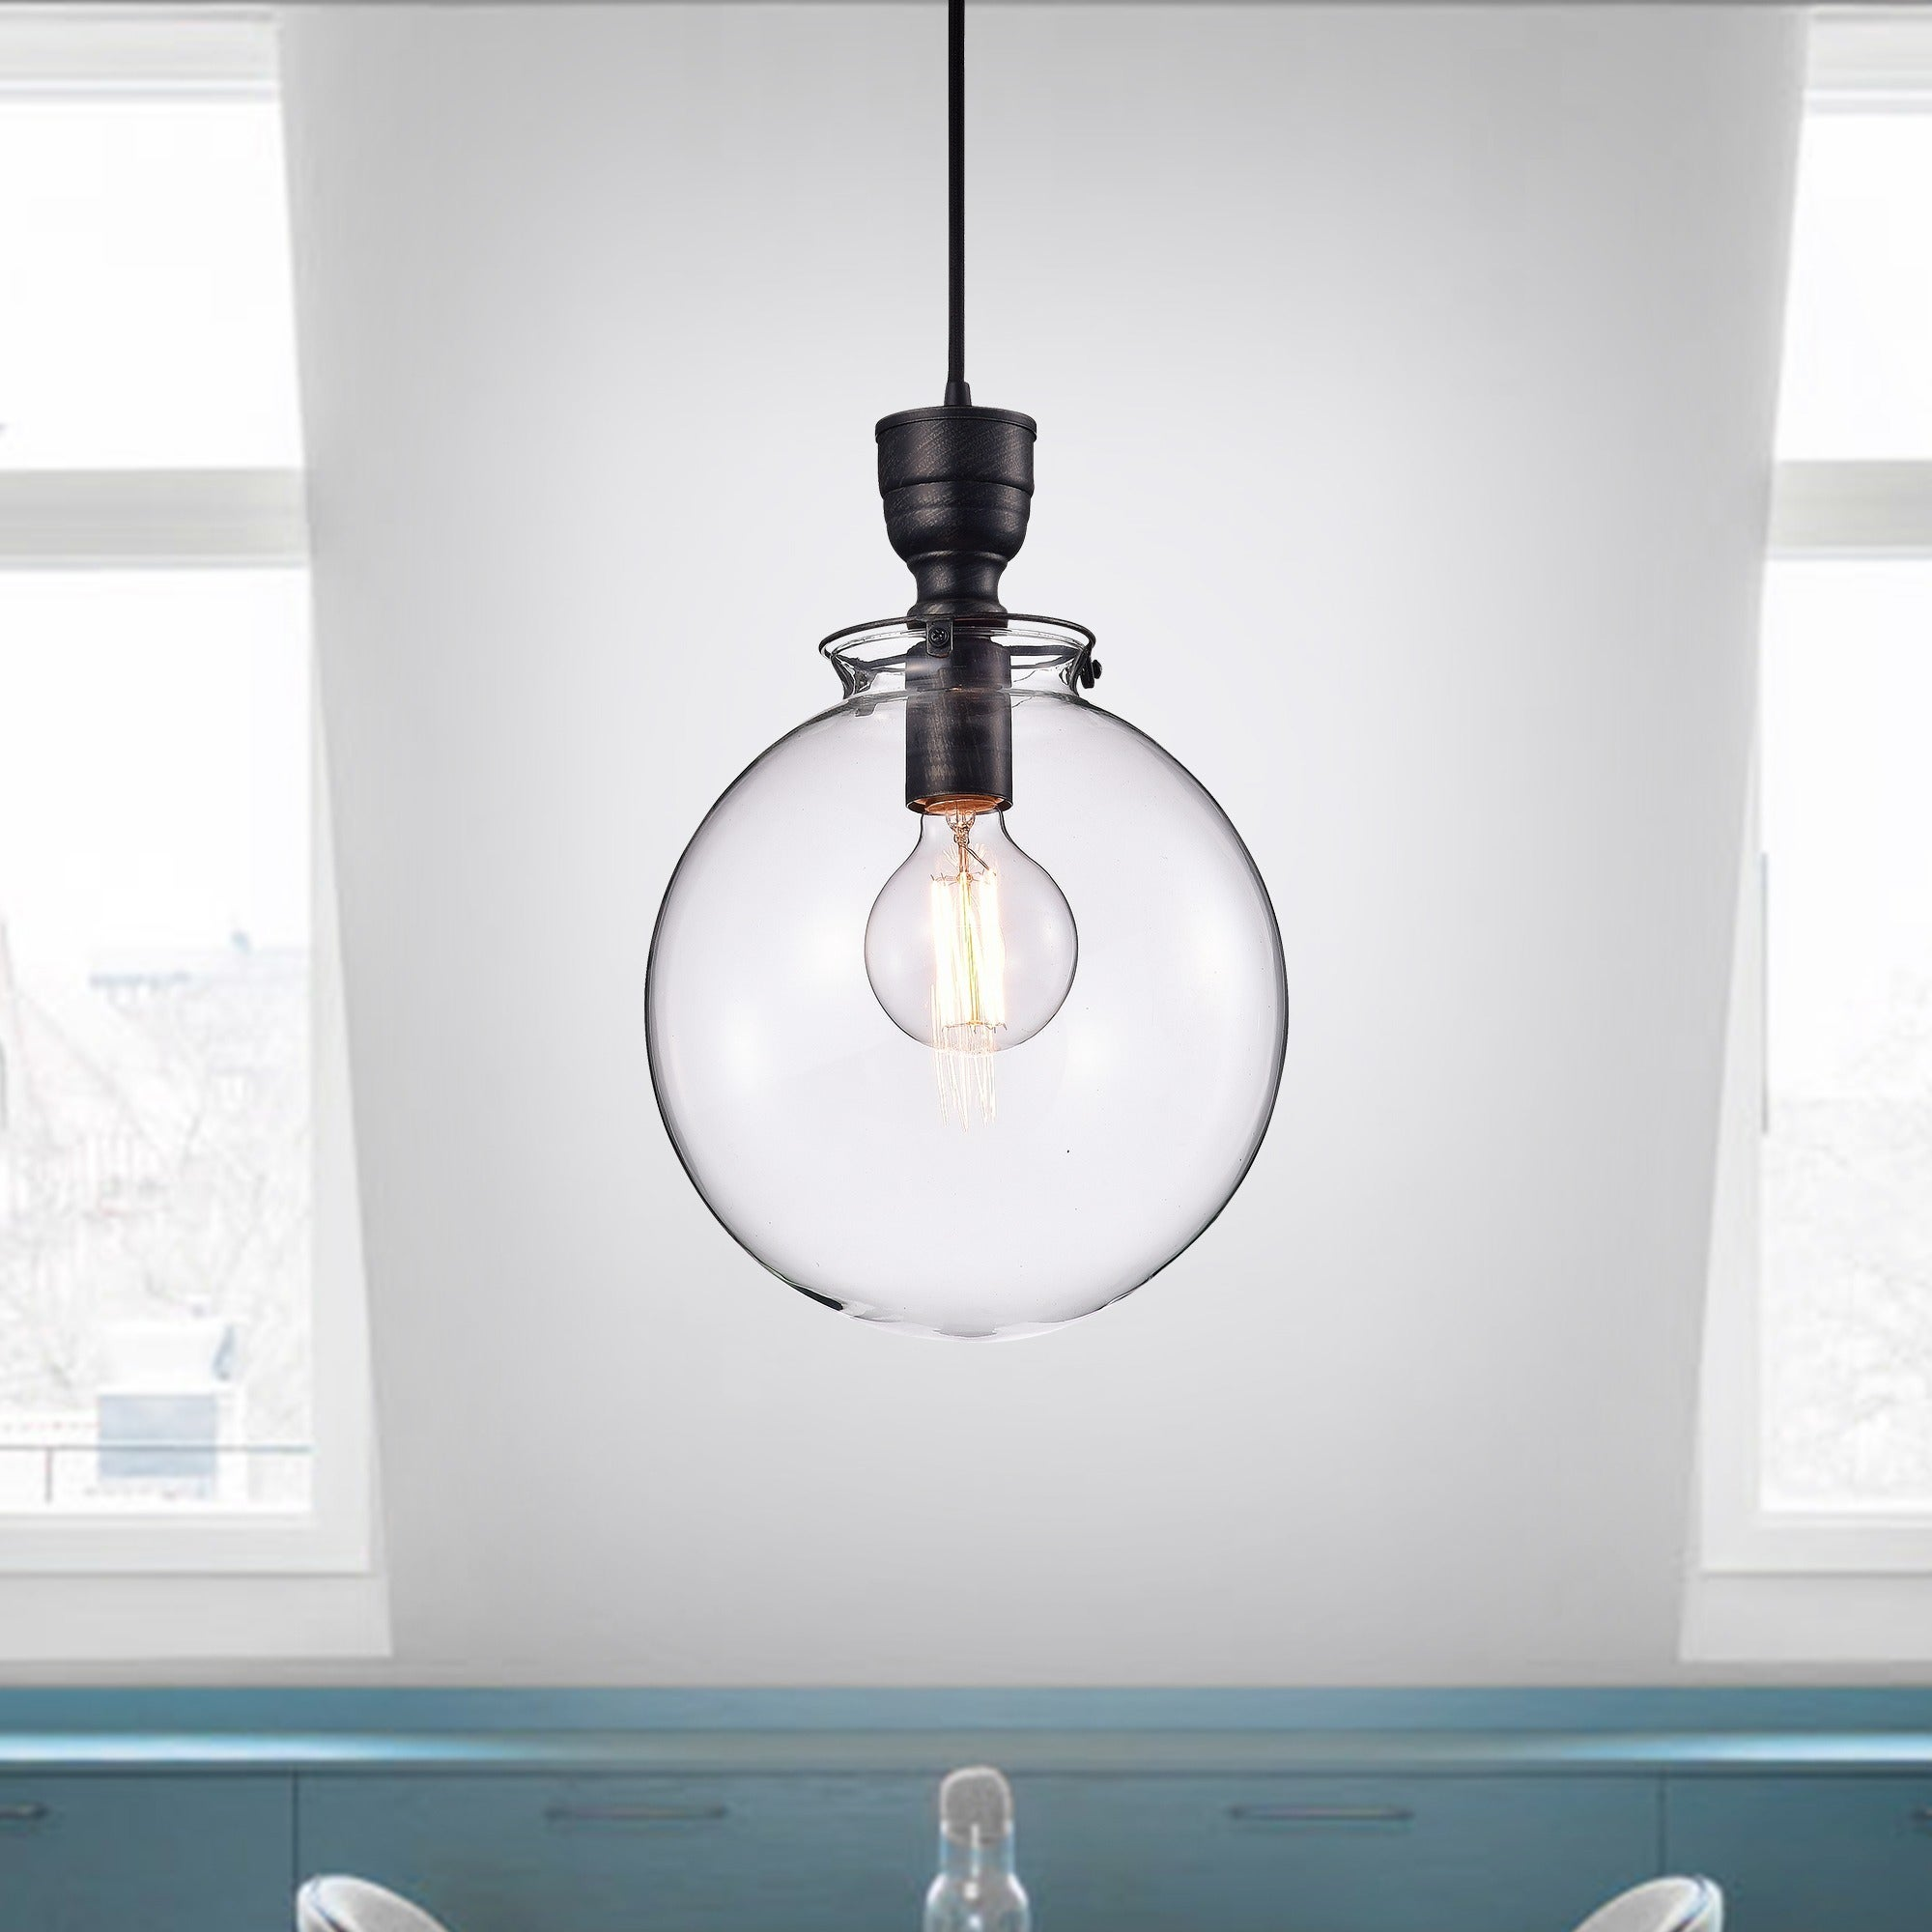 industrial clear lamps most ceiling matchless pendant ceilings flair lamp with chain swag lights hanging metal light glass